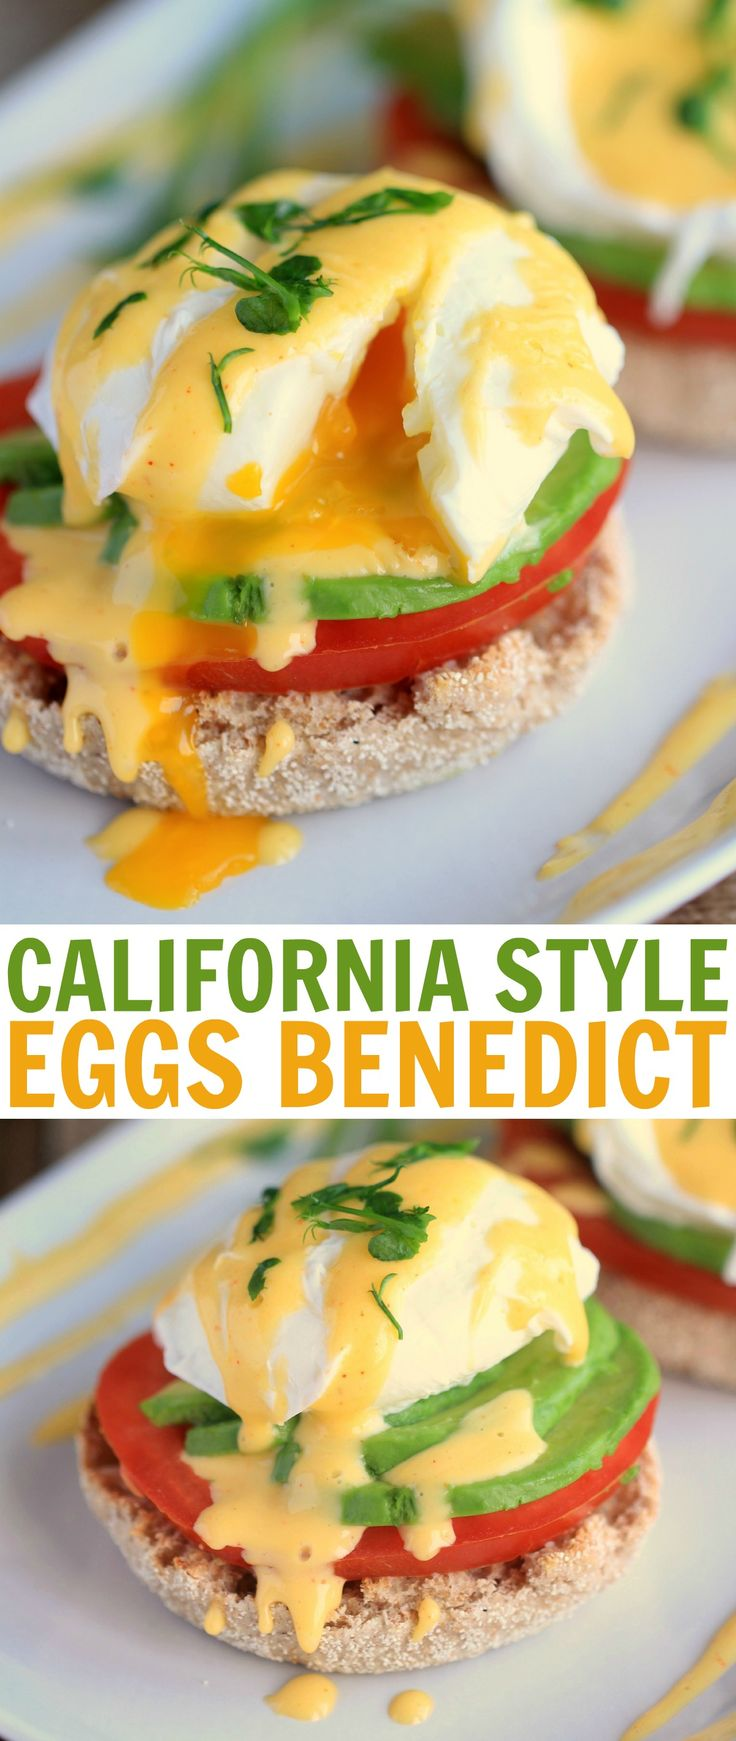 California Style Eggs Benedict= Sunny Side Up Egg Over Tomato Avocado English Muffin